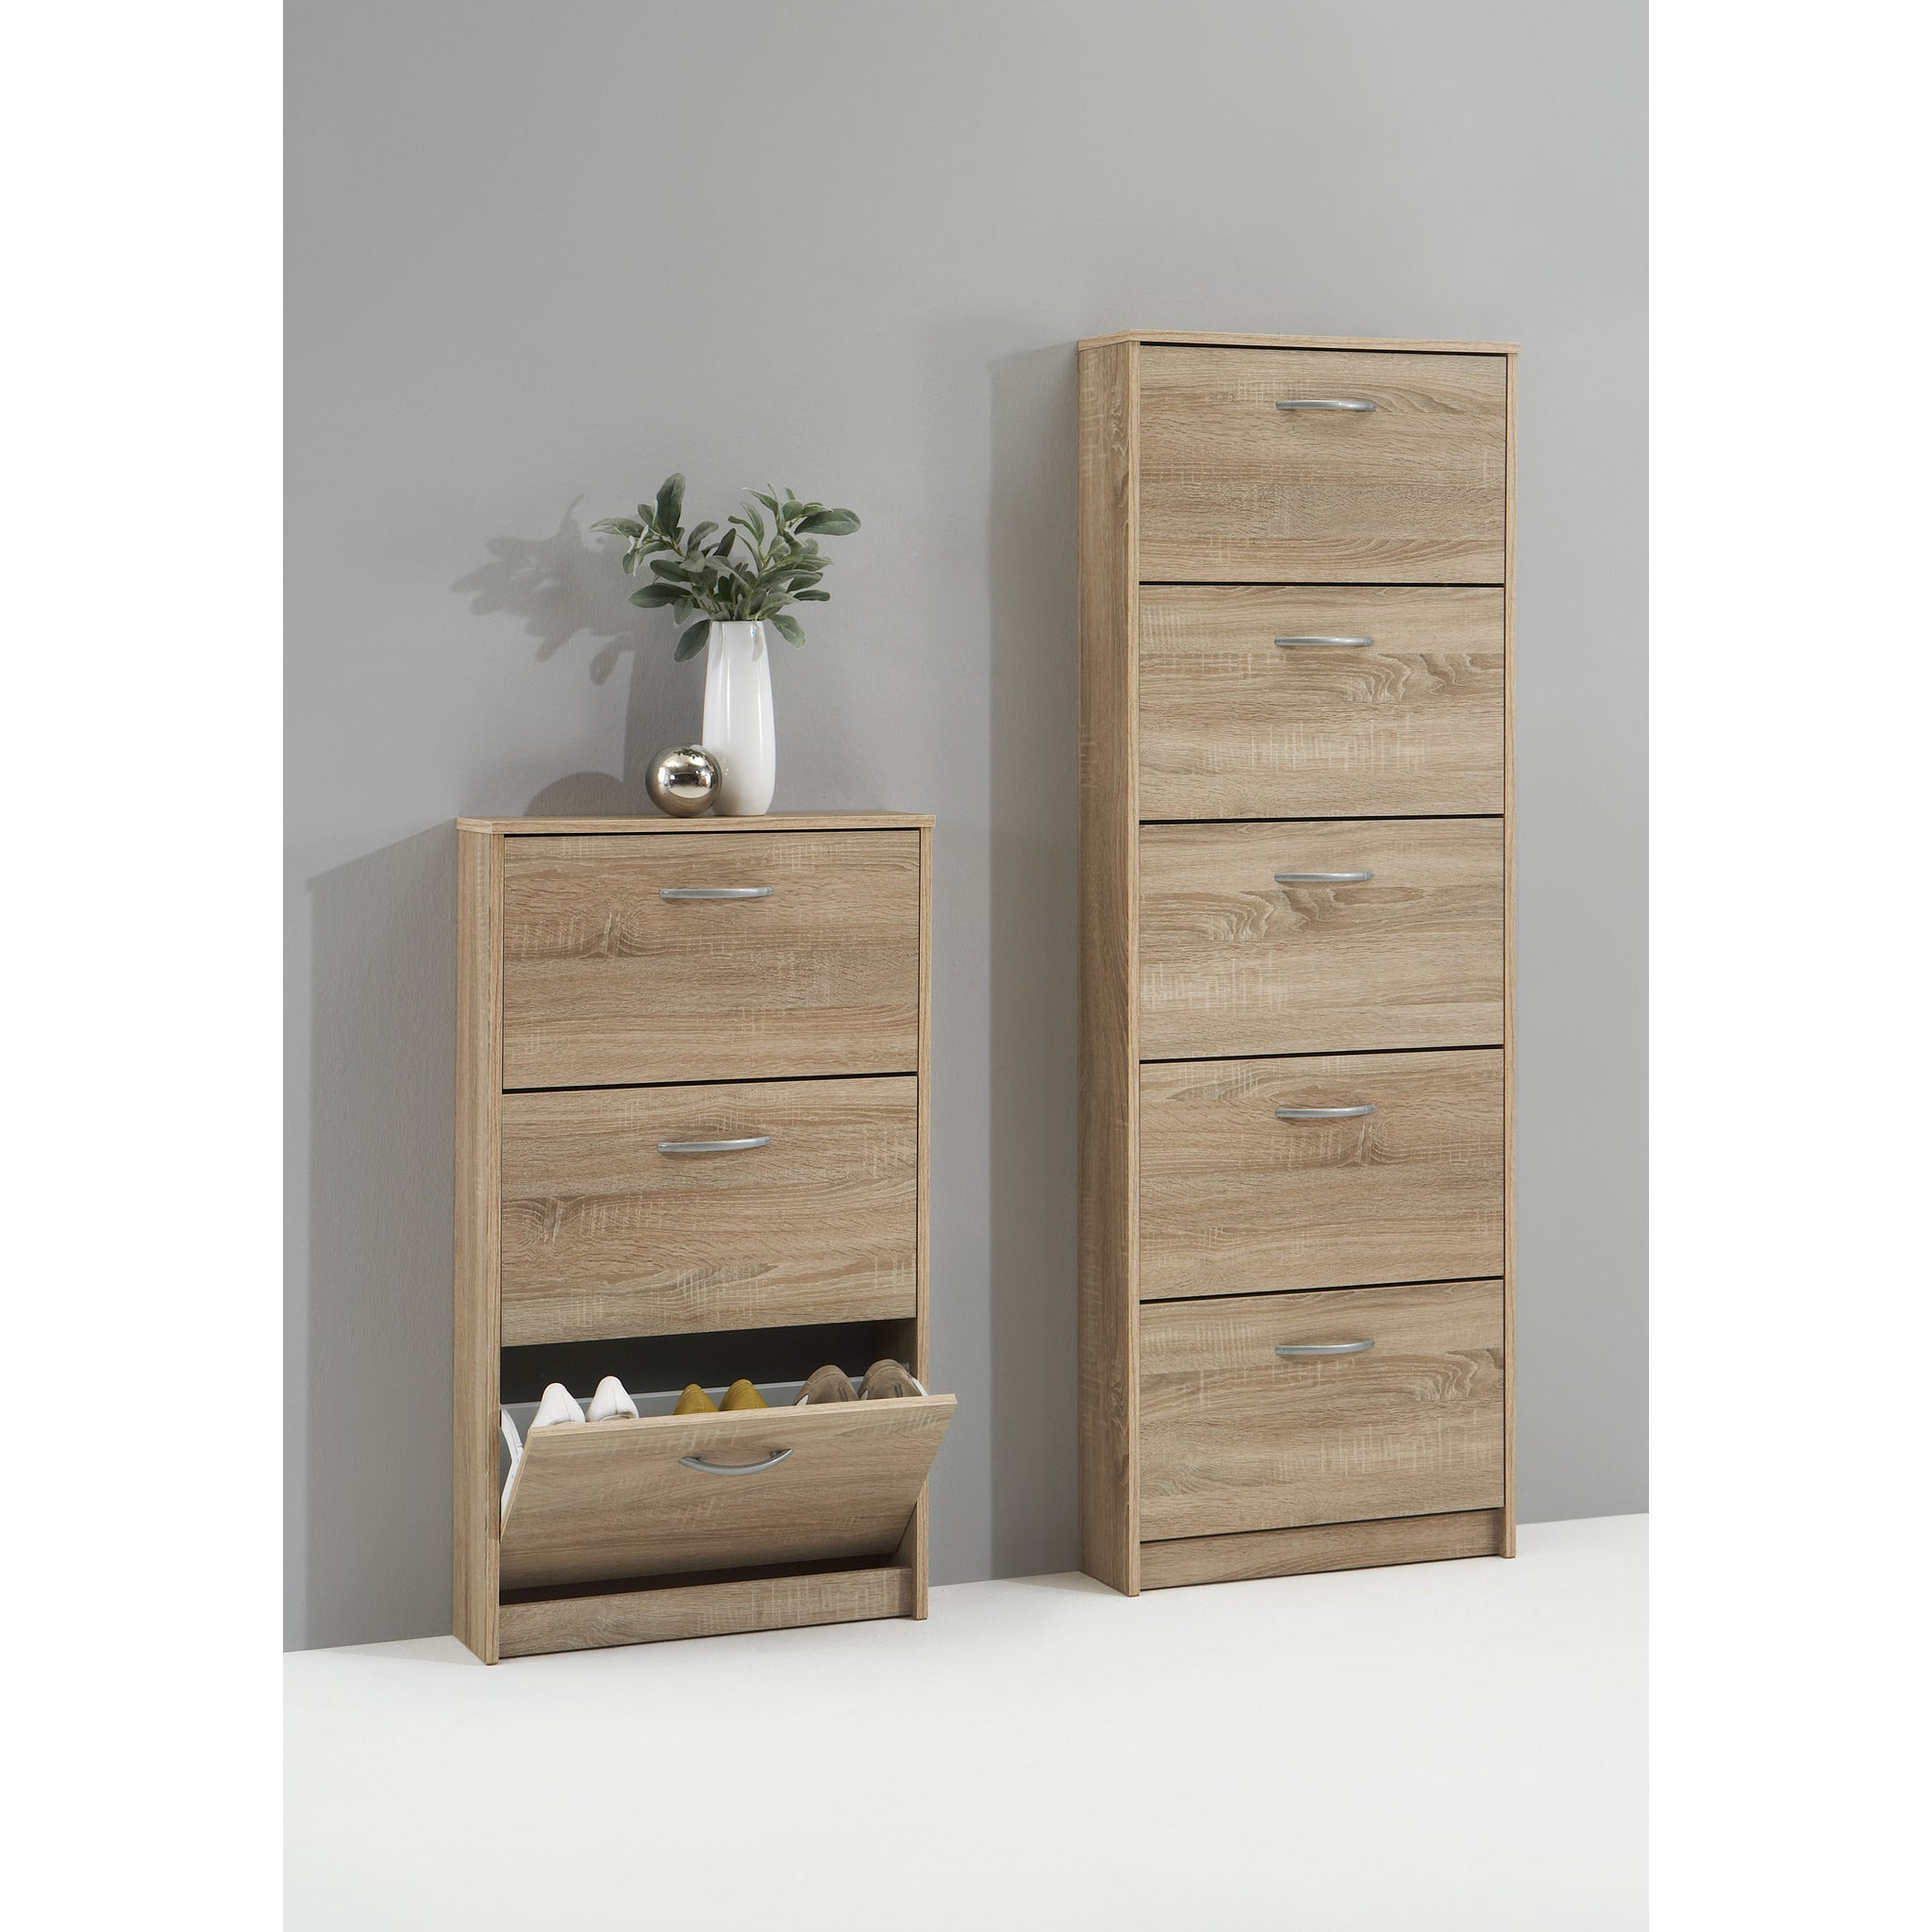 picture cube costco diy ideas baxton examples size storage contemporary lowes wardrobe closets cabinet inspirations of systems closet algot full walmart for organizers shoe bench organizer wall